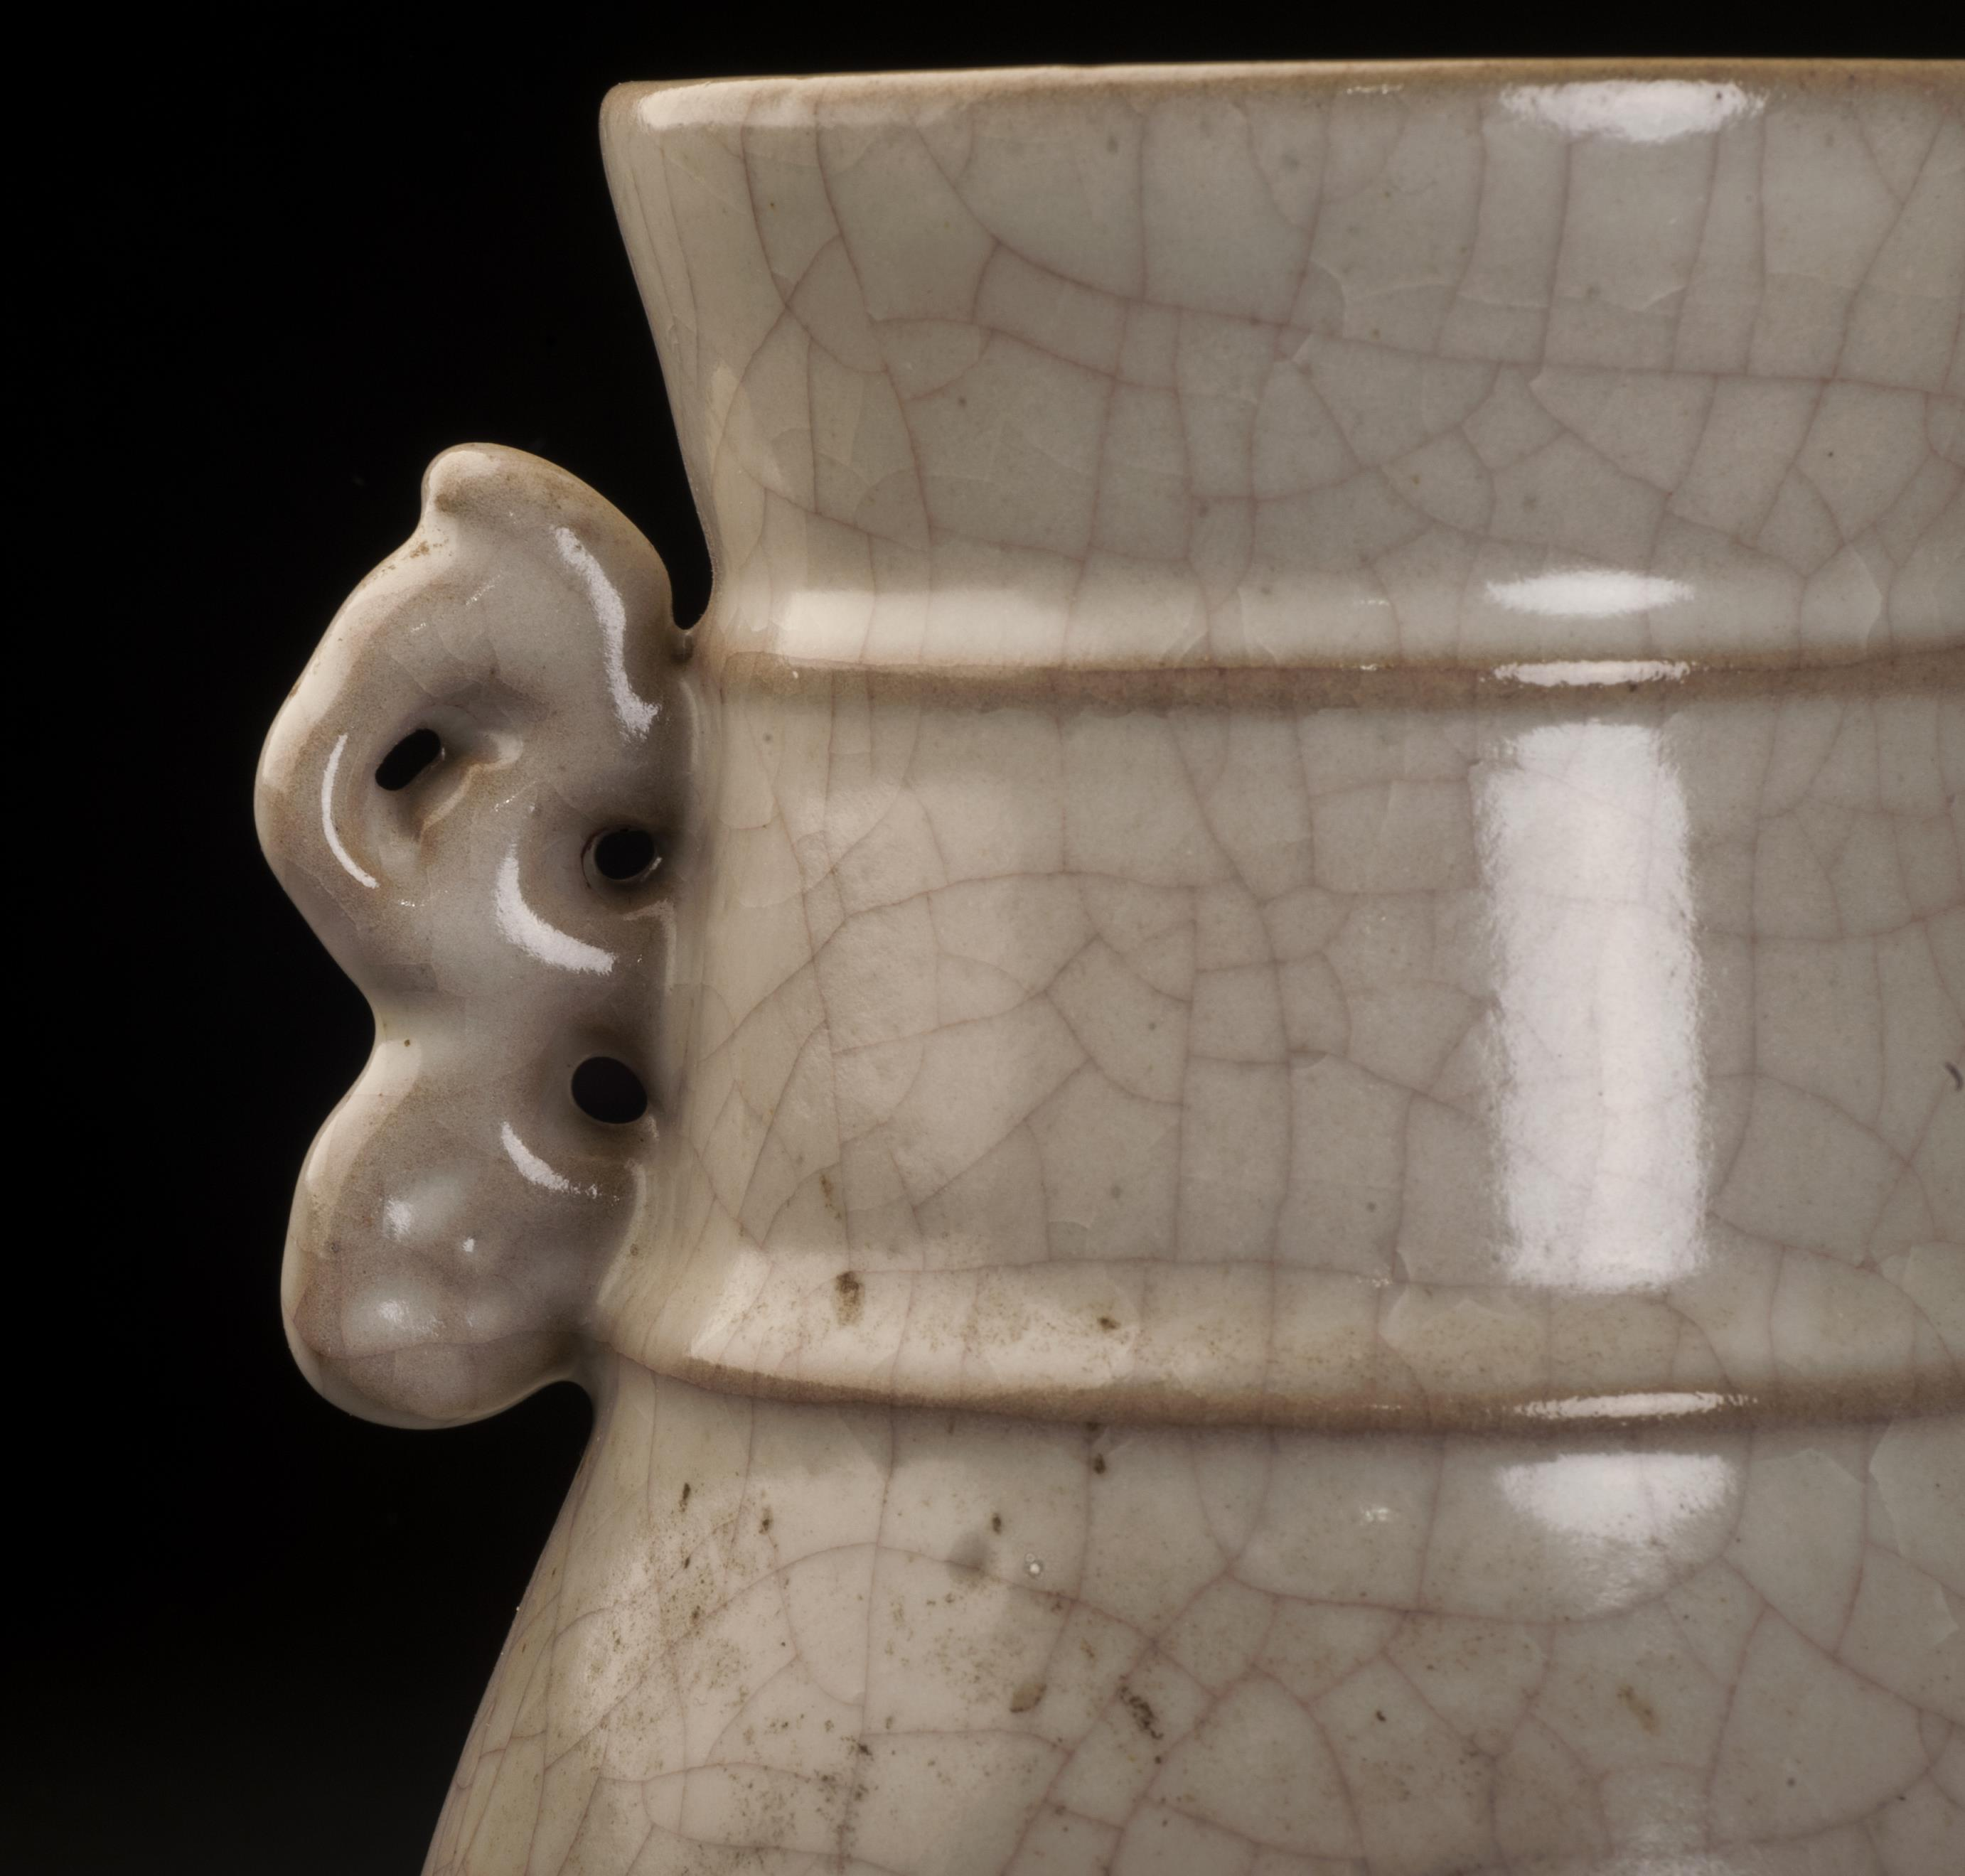 51bidlive a guan ware glazed vase with two handles a guan ware glazed vase with two handles reviewsmspy